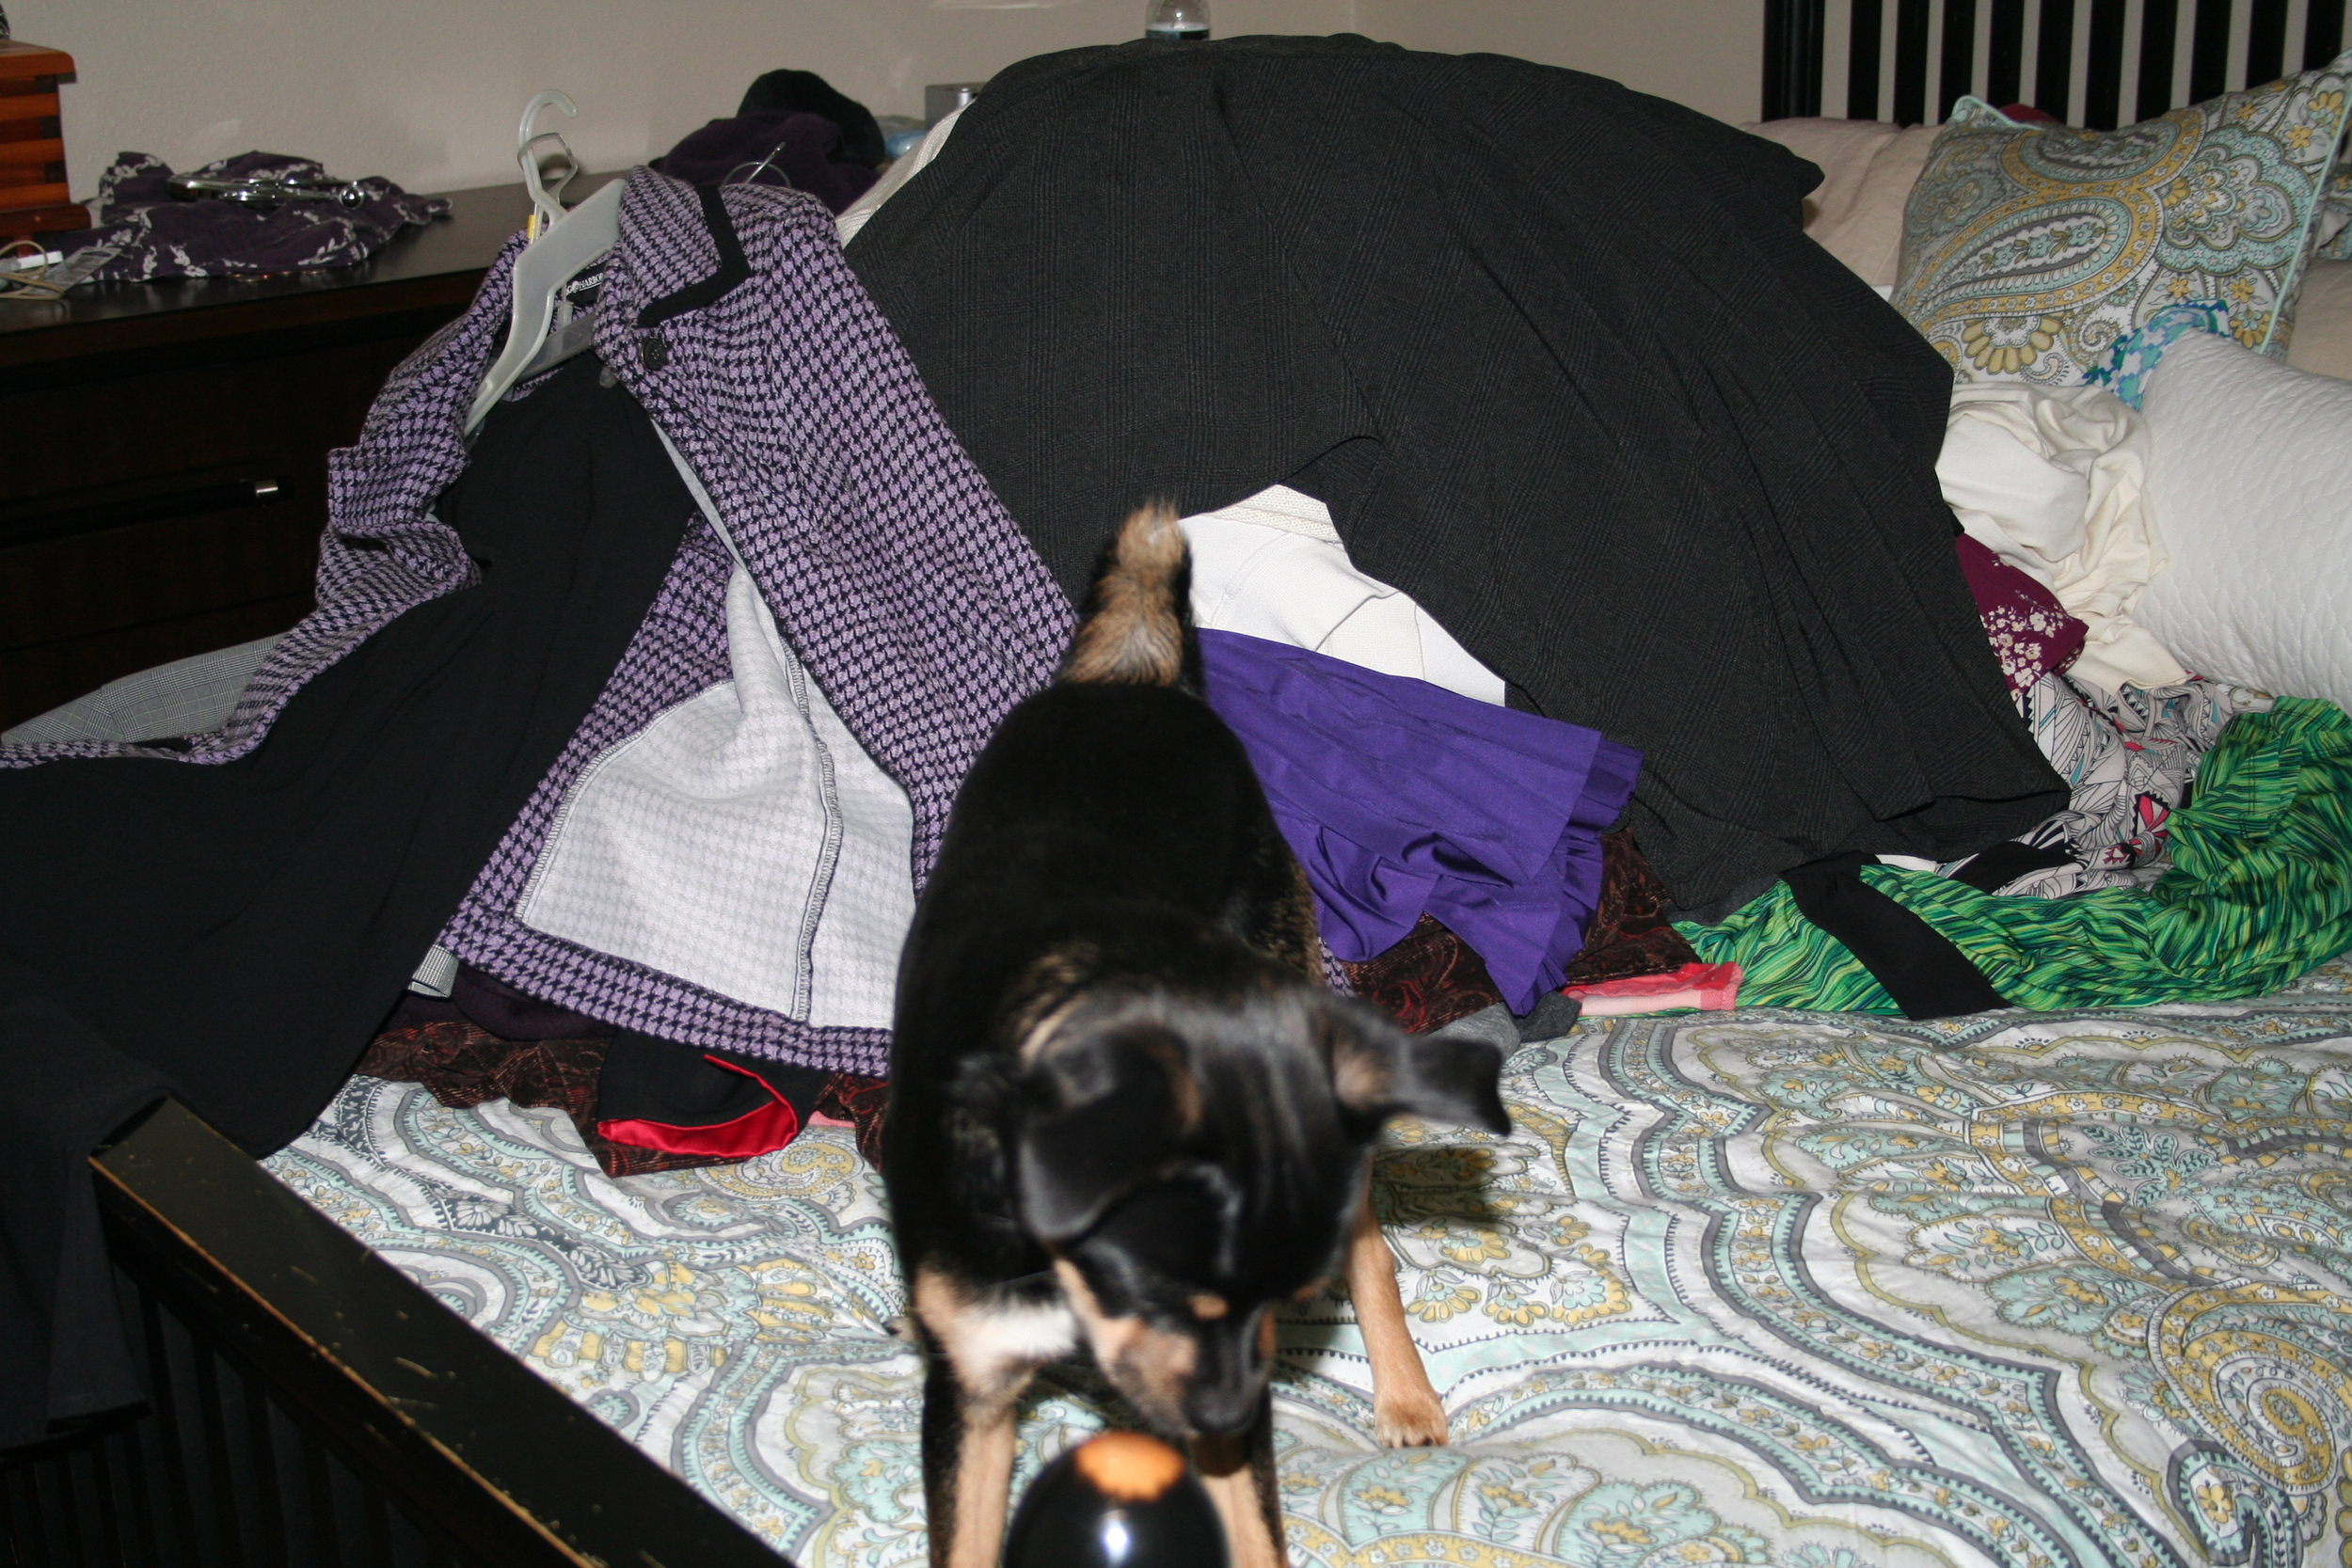 The mountain of clothes, plus Bigby. Gah, I've had that purple suit thing since I was 18. Not anymore!